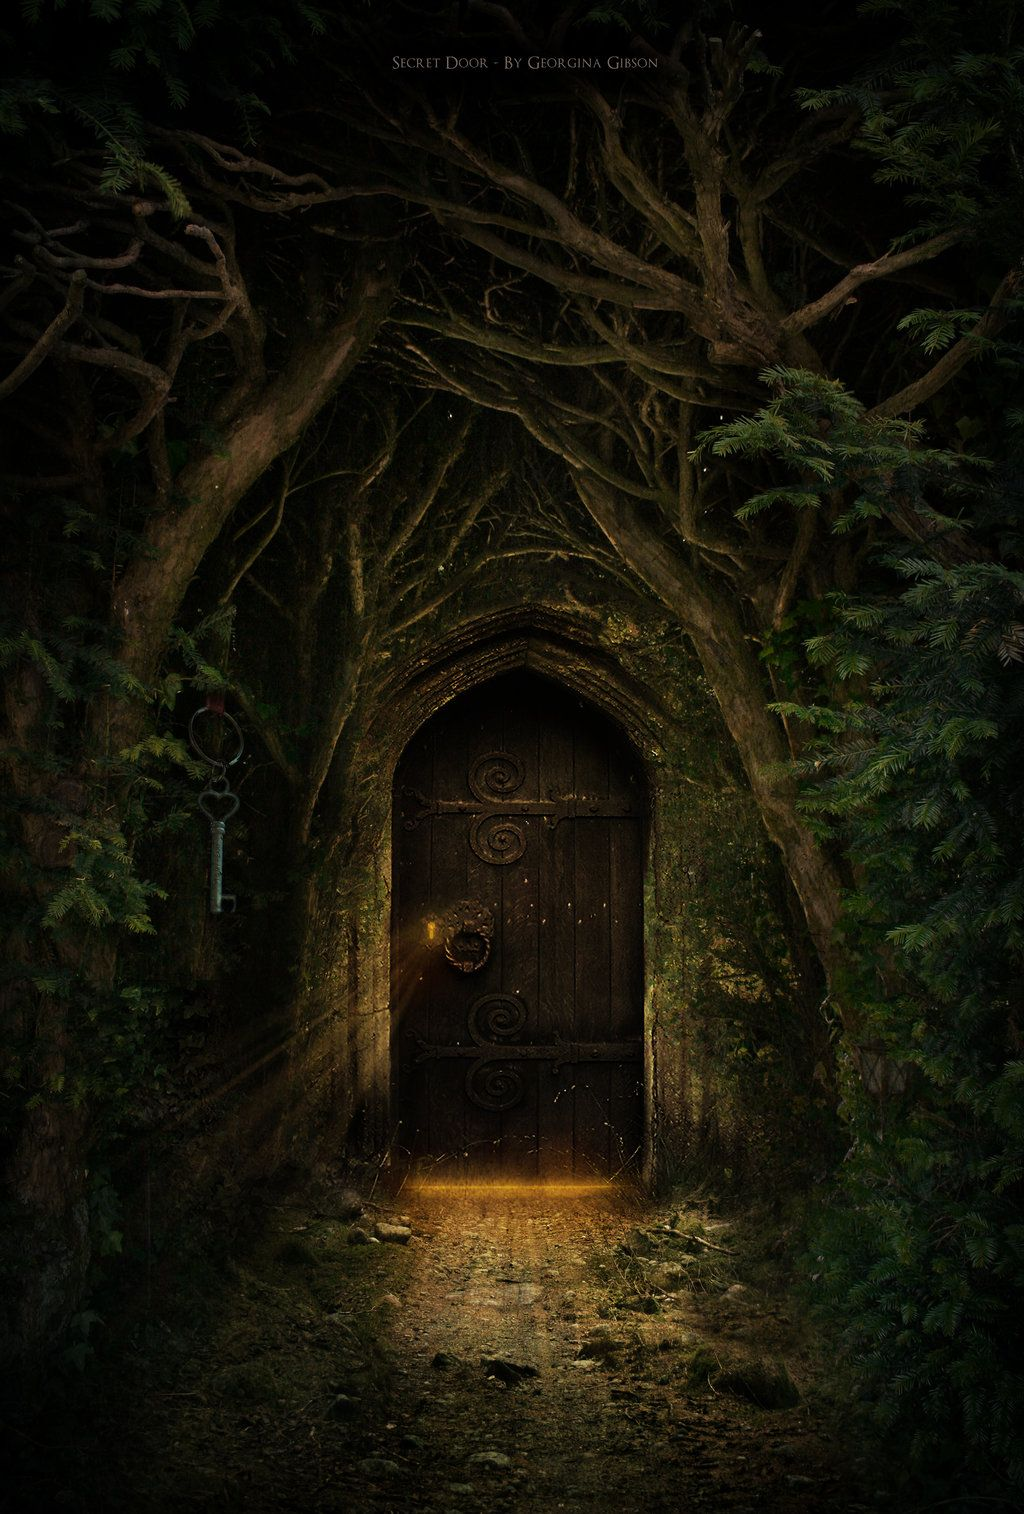 This is definitely a path to Faery! Secret Door by